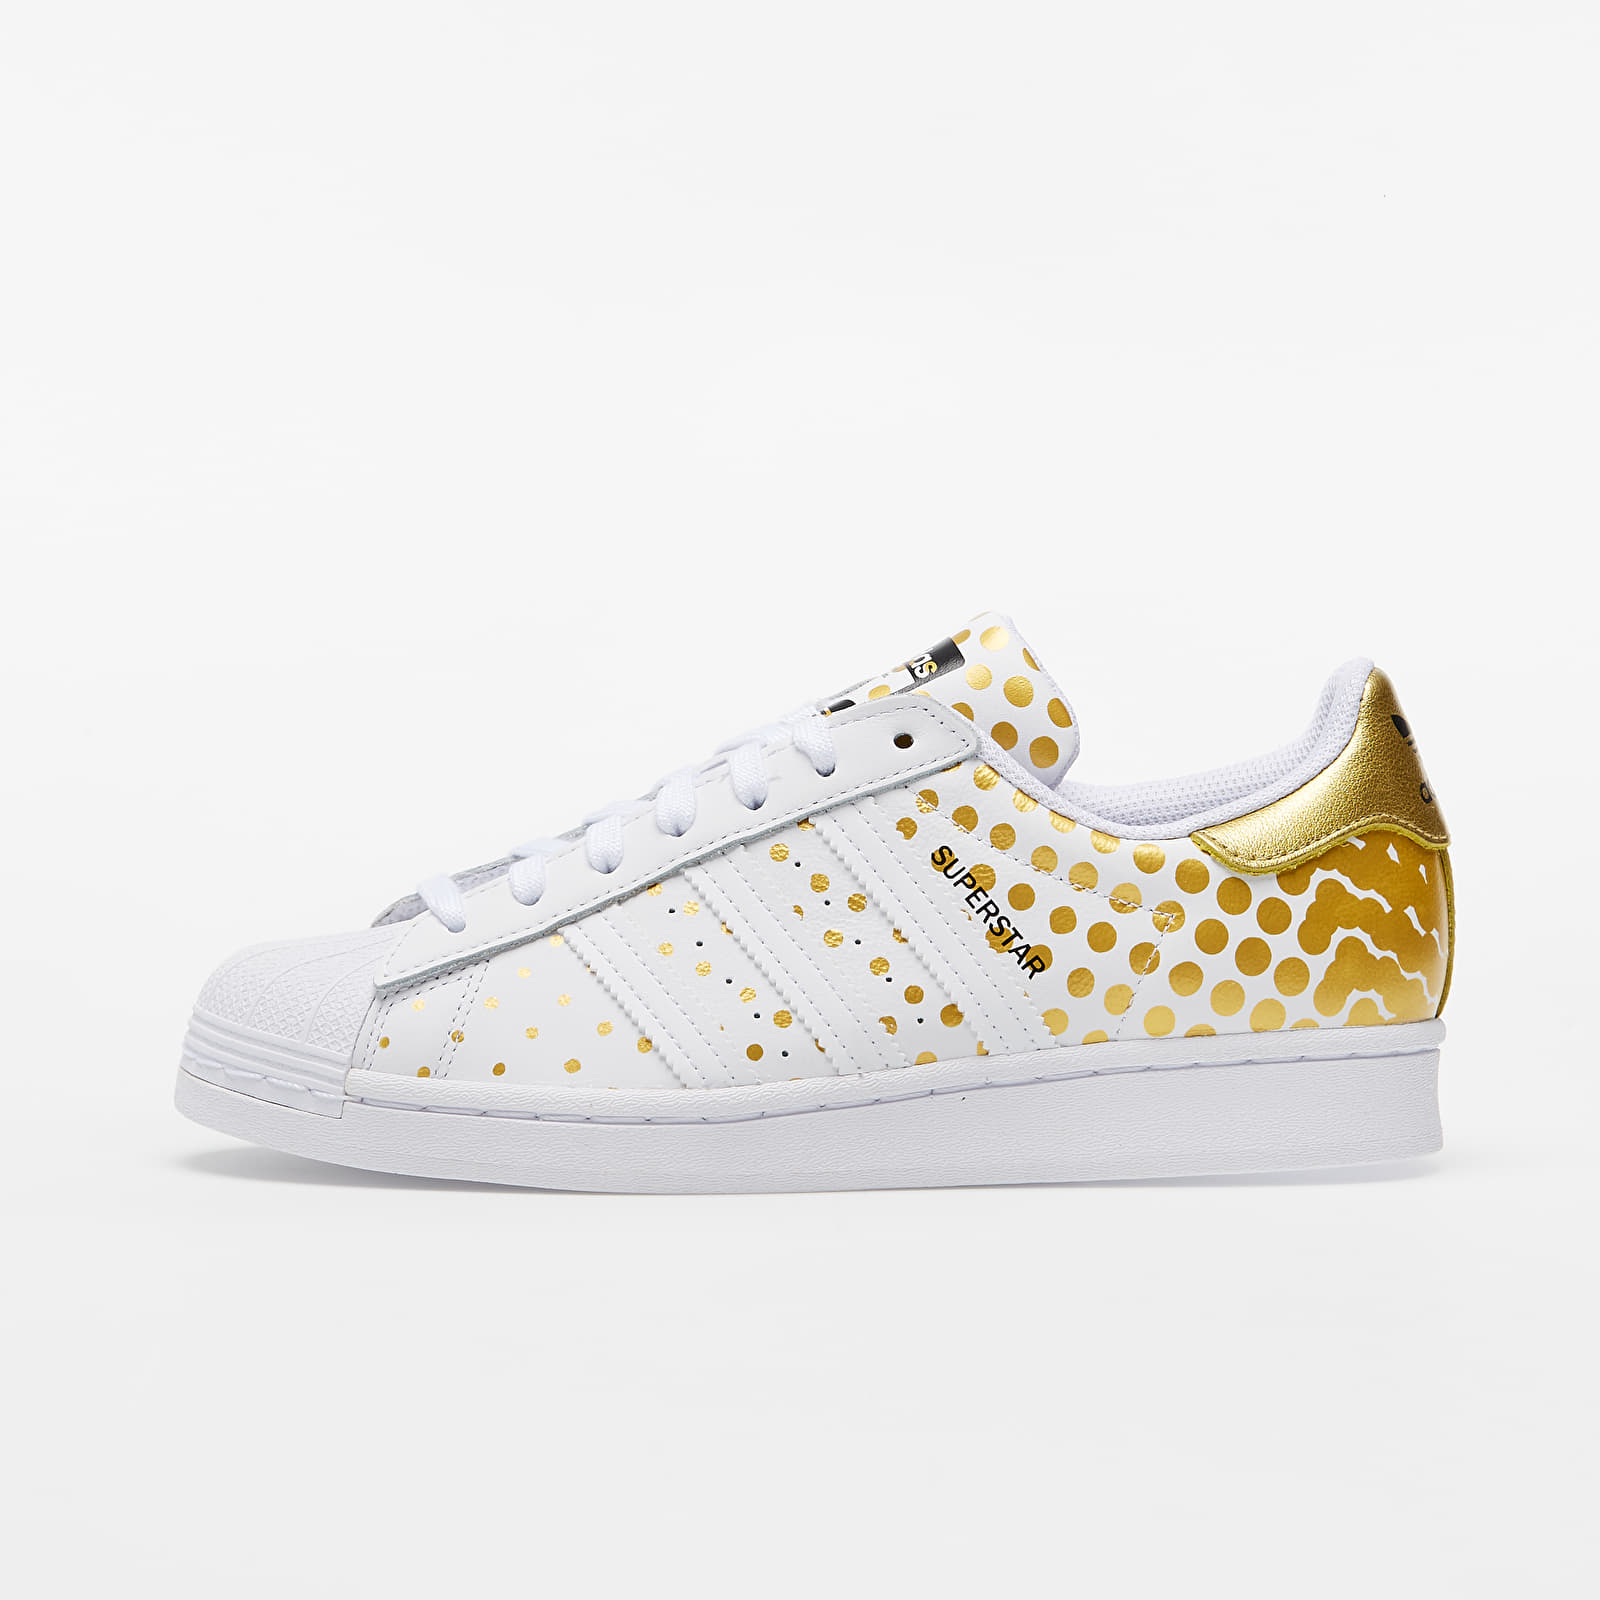 adidas Superstar W Gold Metalic/ Ftw White/ Core Black FX8552